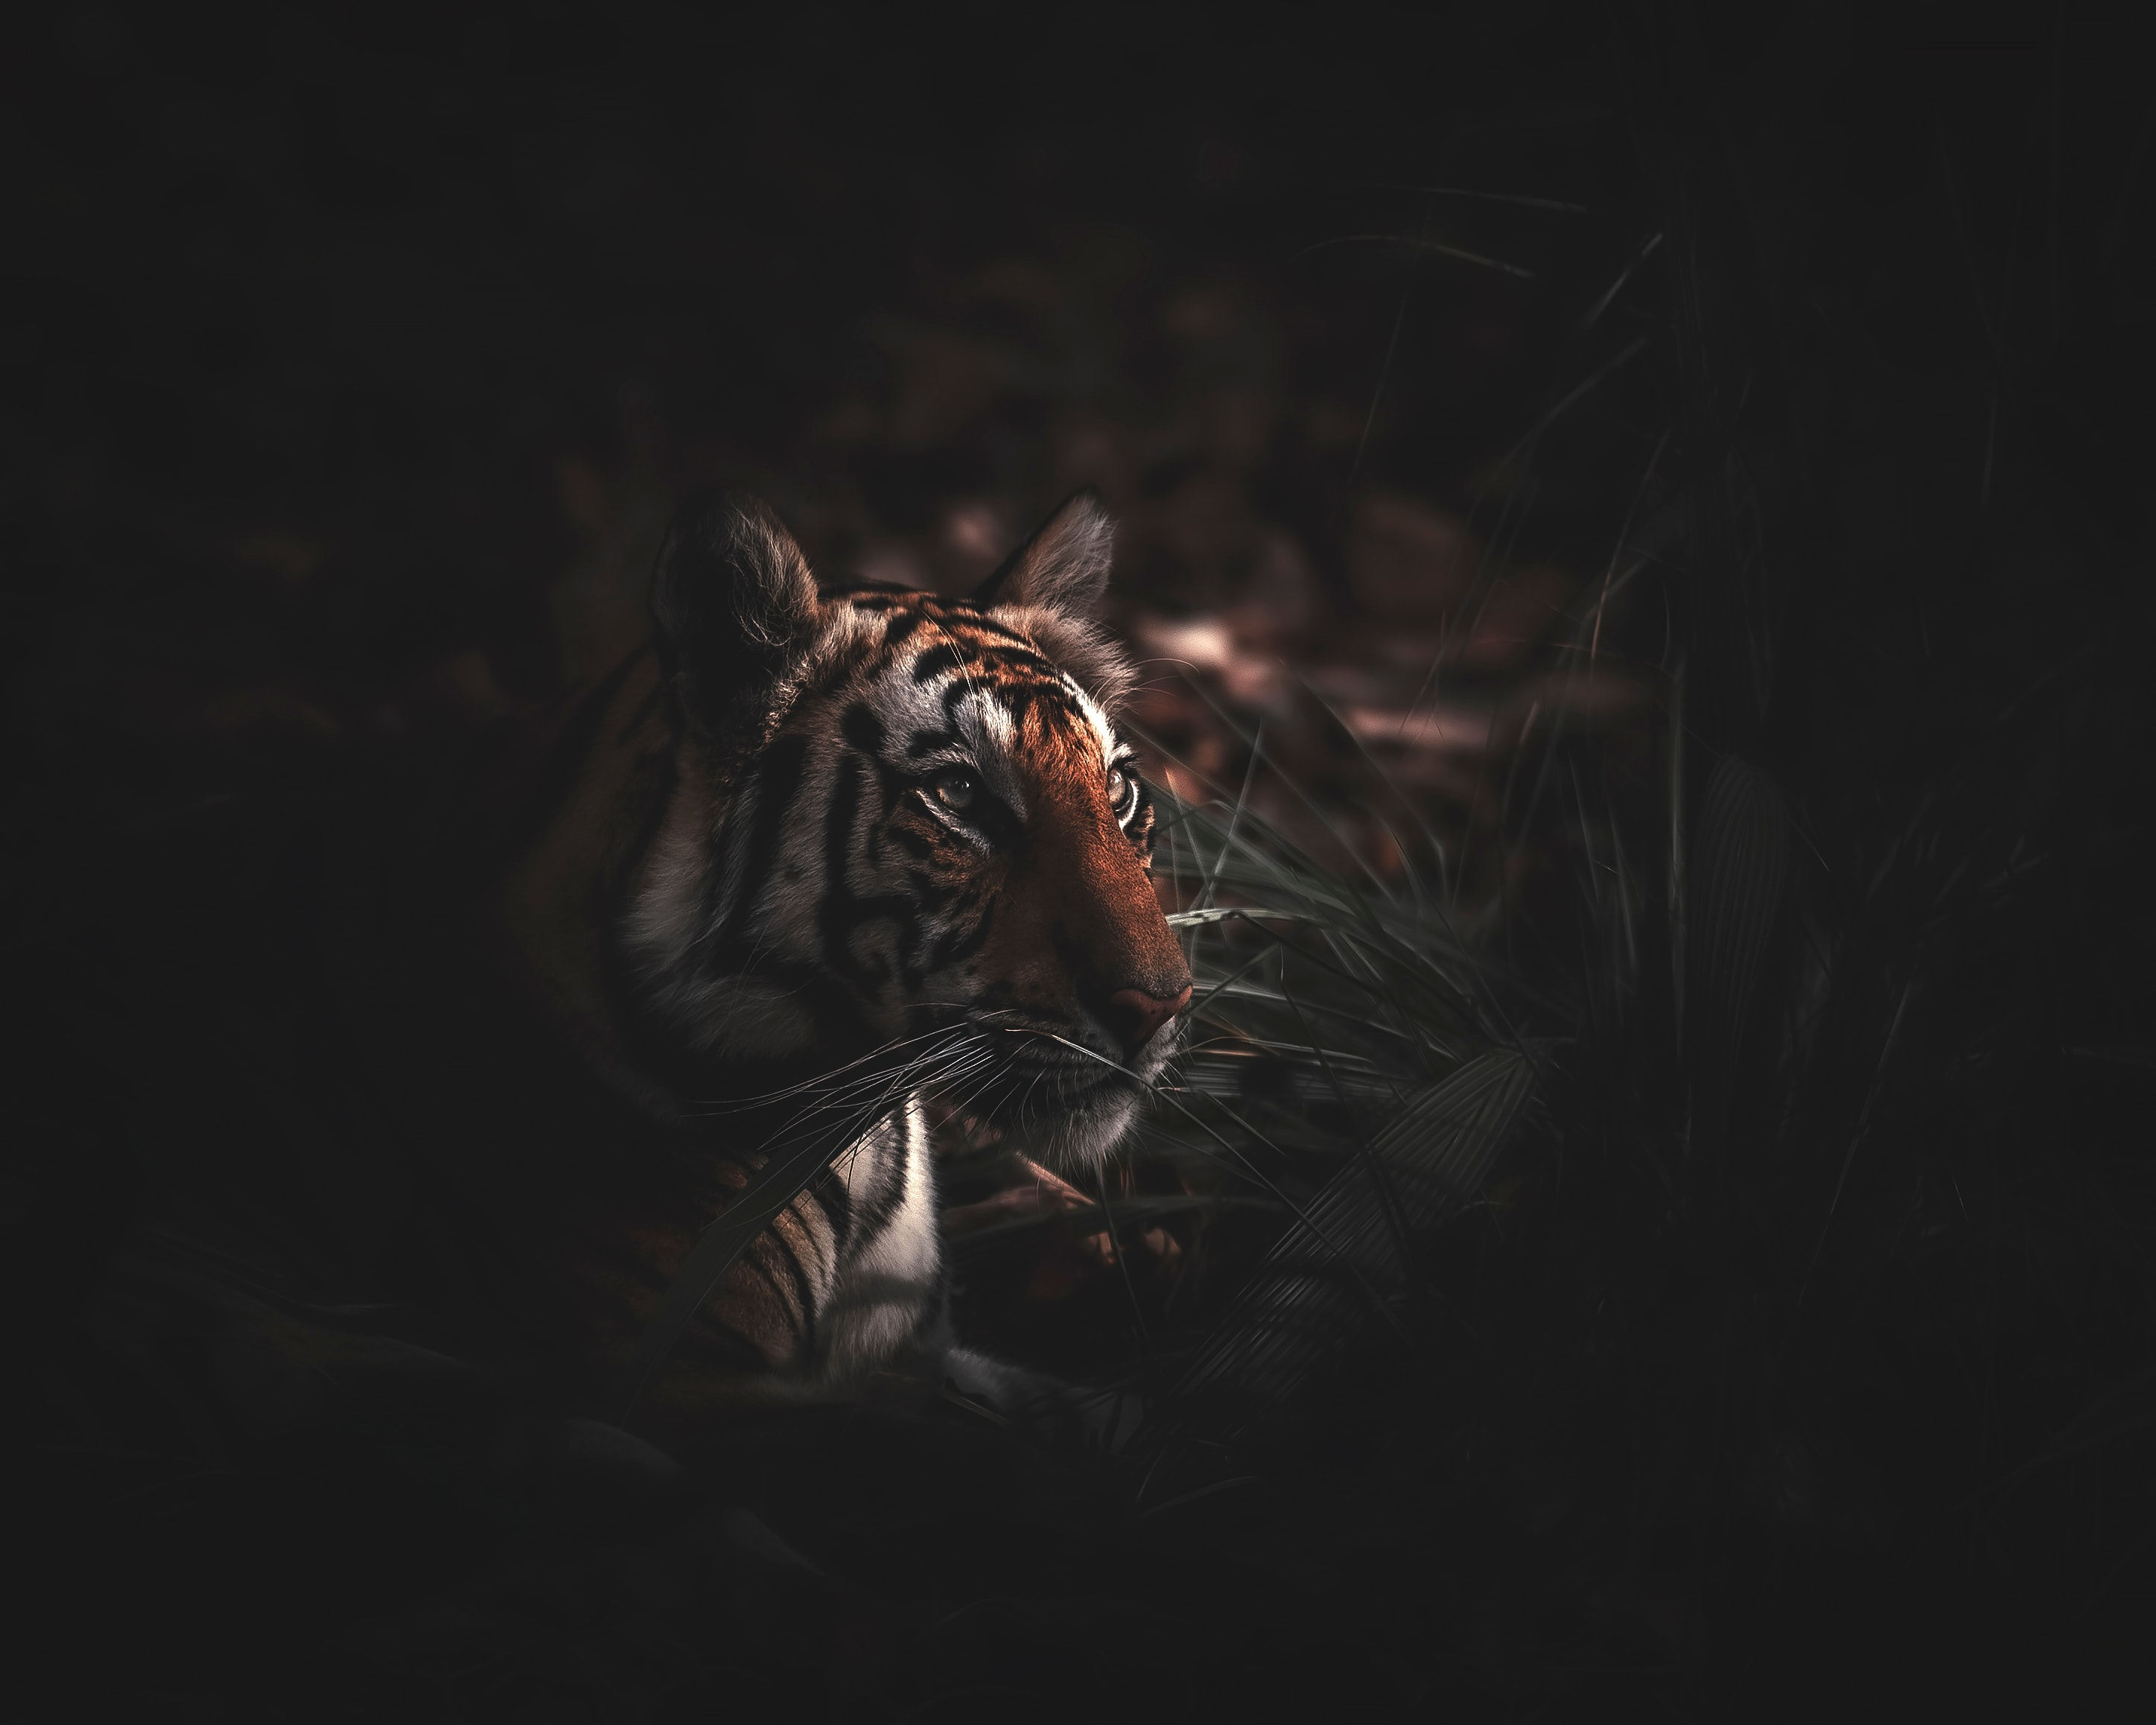 101277 download wallpaper Animals, Tiger, Predator, Grass, Big Cat, Wildlife screensavers and pictures for free